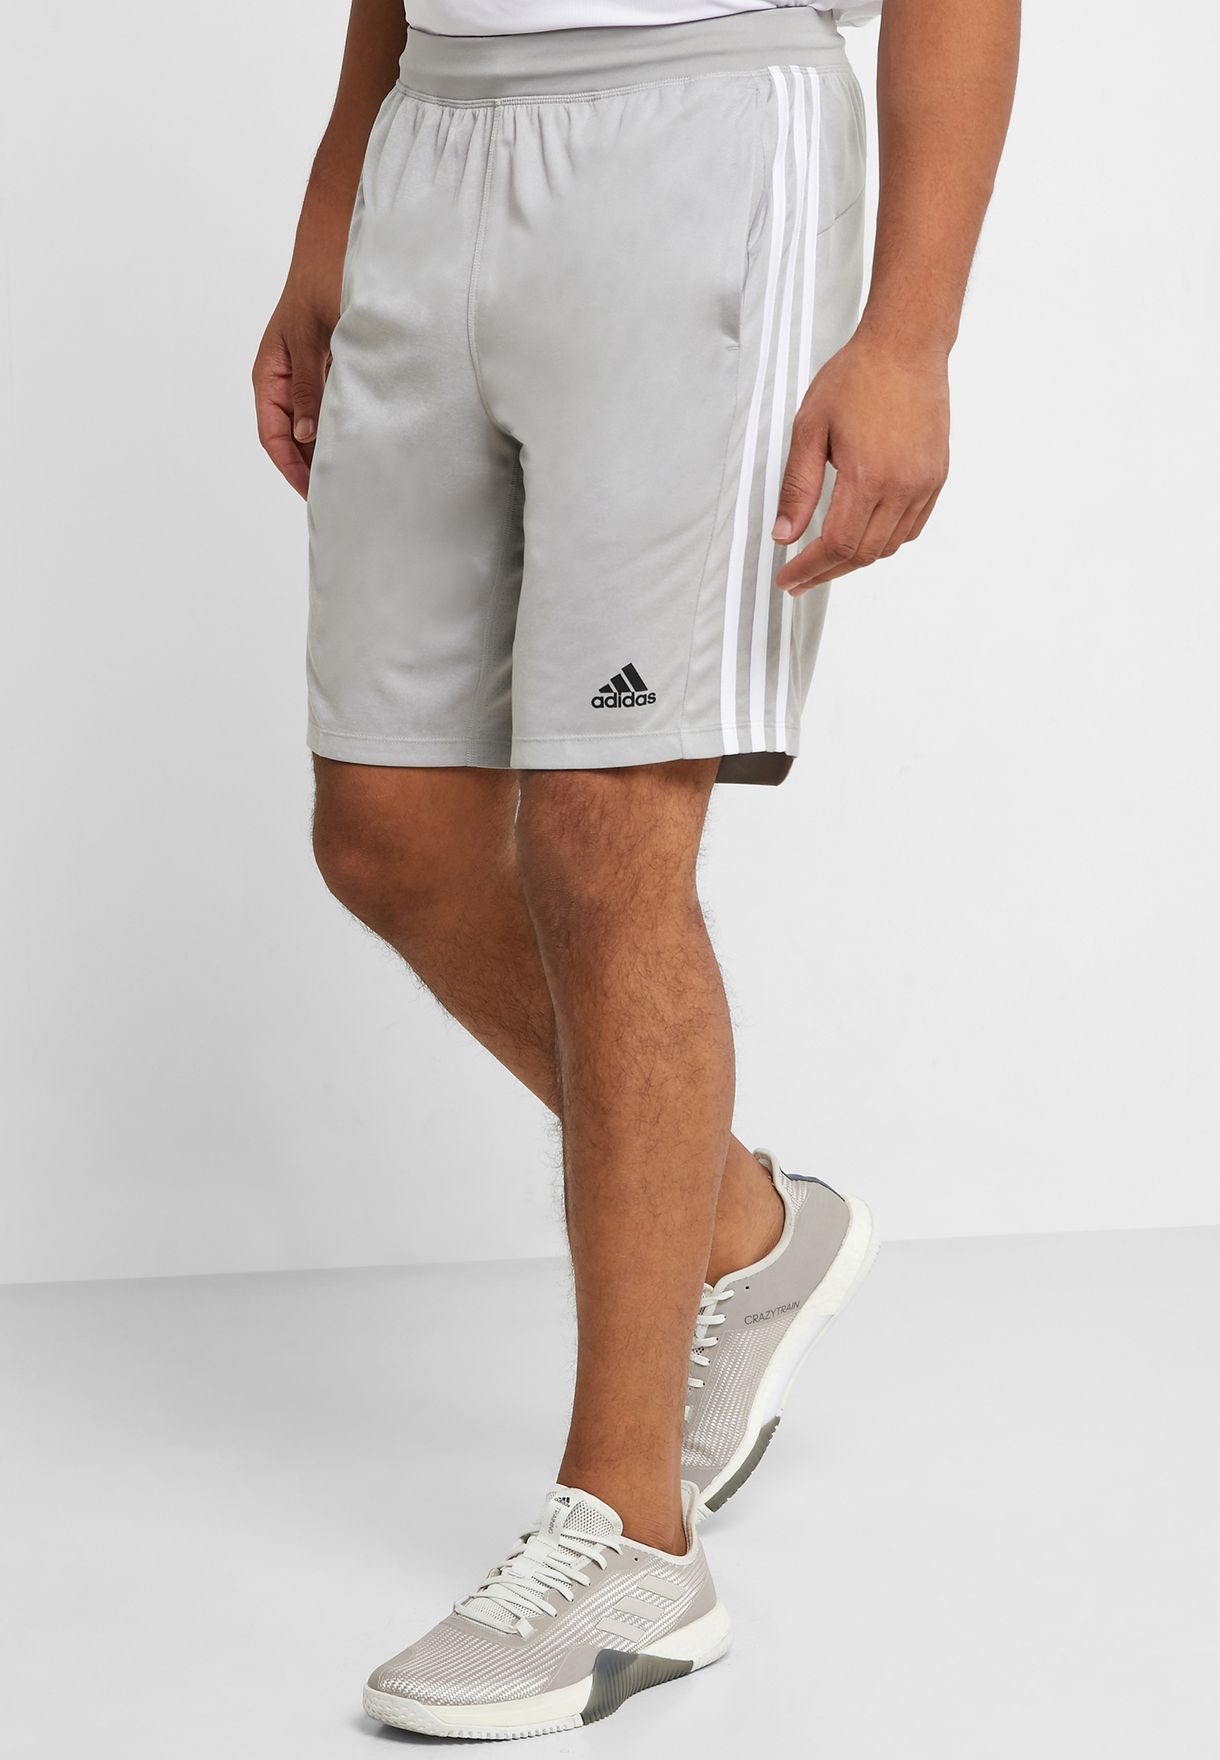 adidas 4krft sport 3-stripes shorts